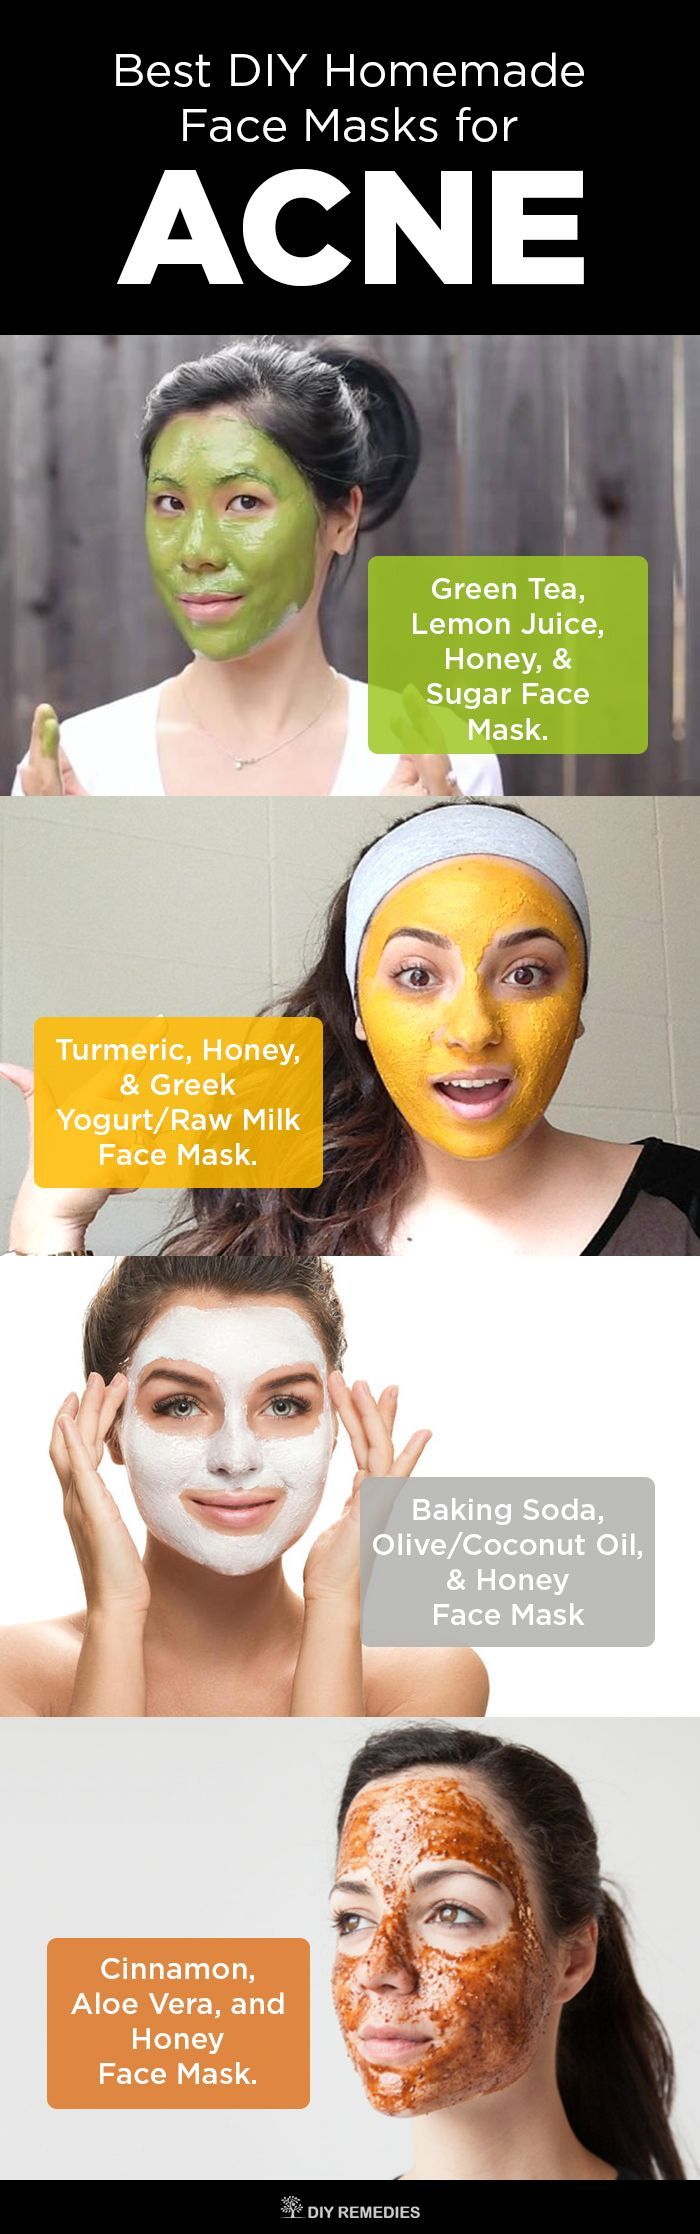 6 Best DIY Homemade Face Masks for Acne For Your Health